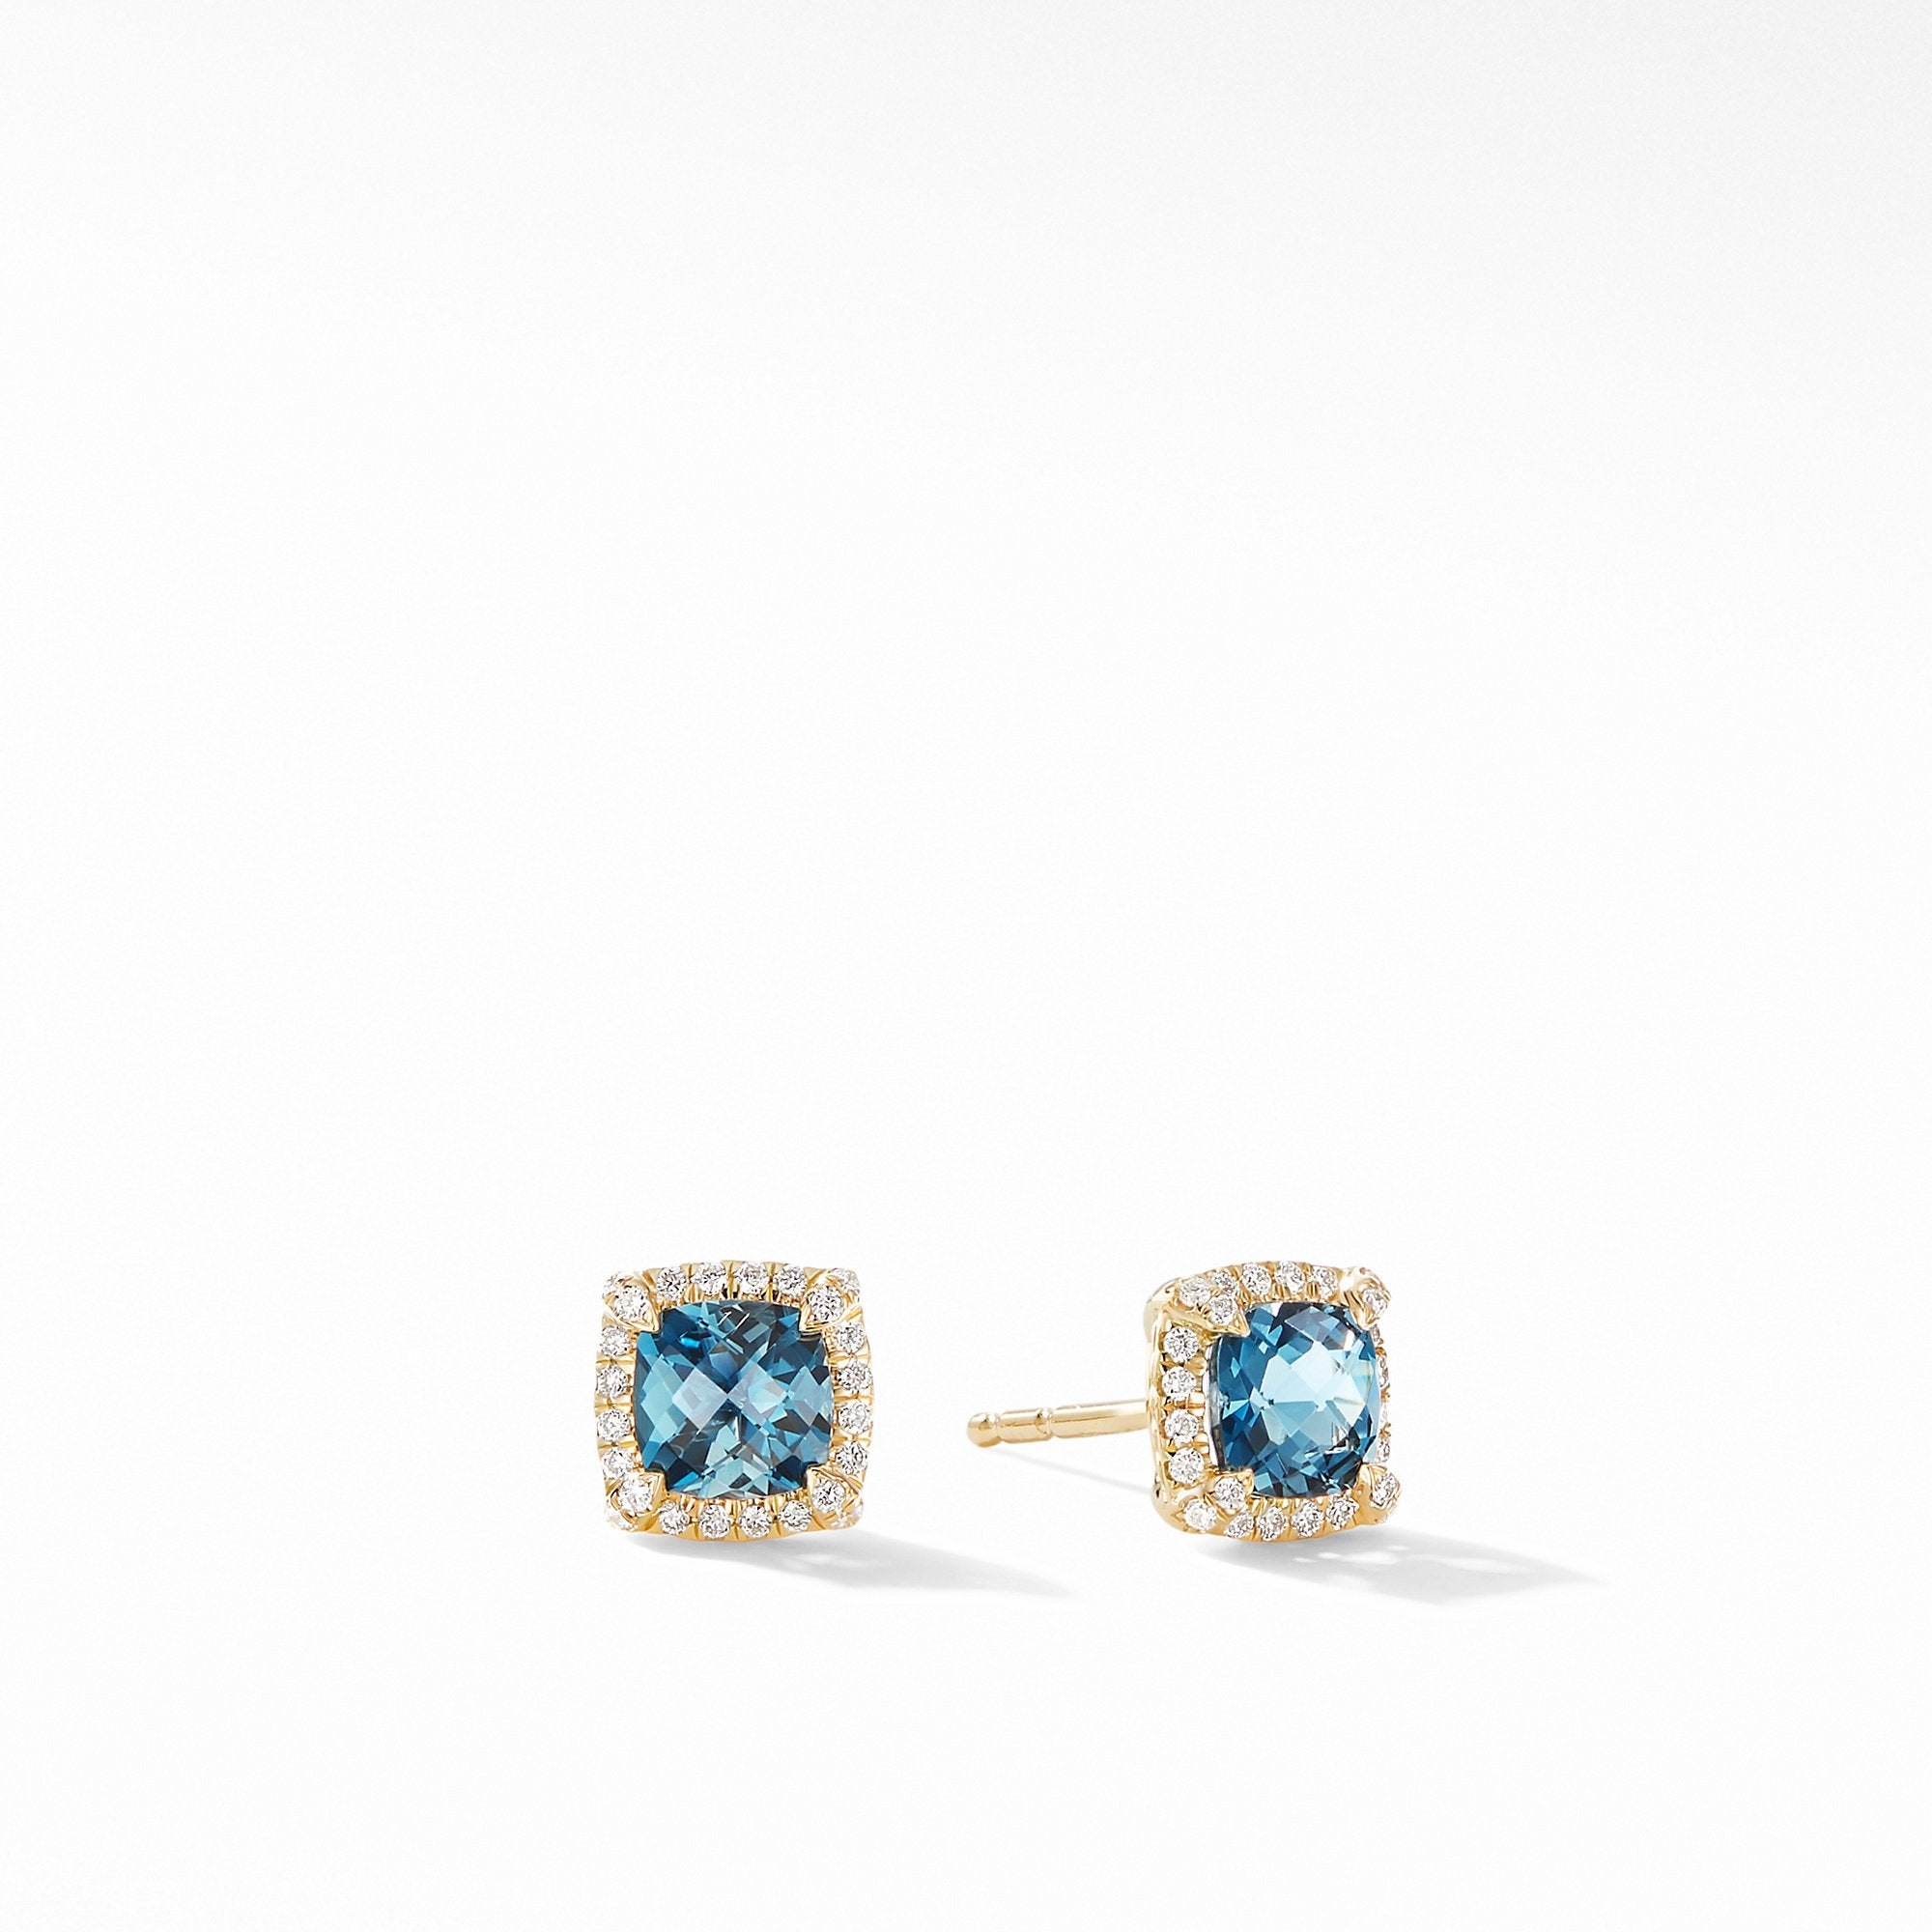 Petite Chatelaine® Pavé Bezel Stud Earrings in 18K Yellow Gold with Hampton Blue Topaz